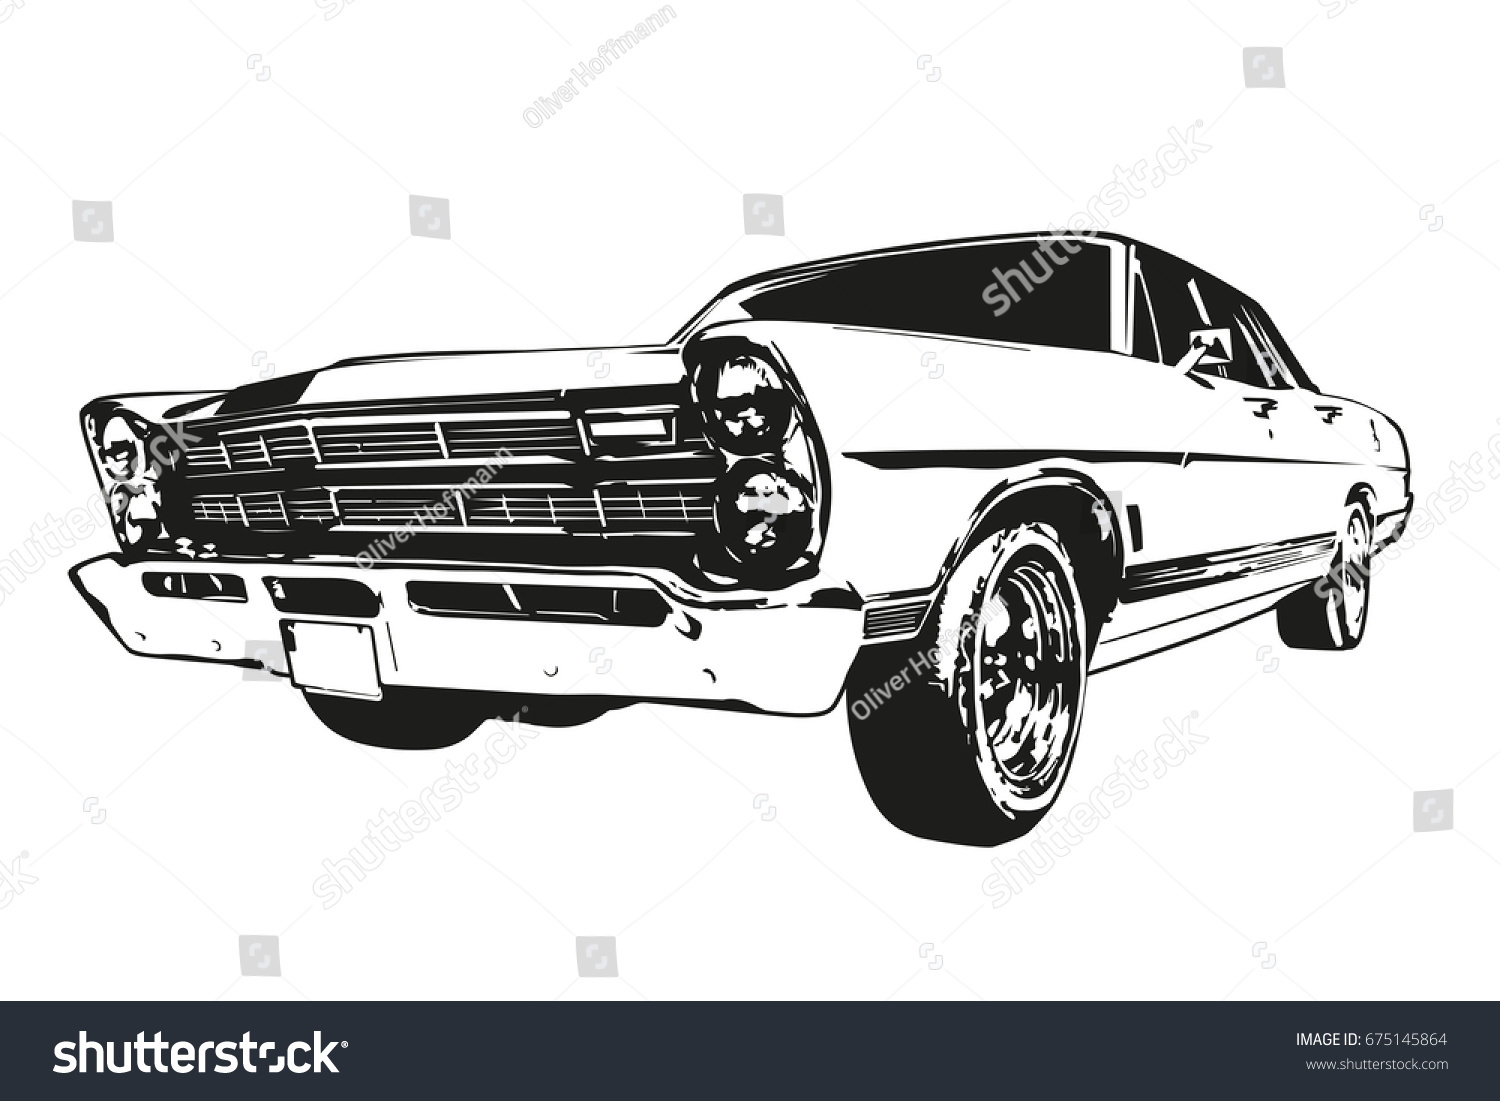 Silhouette Vintage American Muscle Car 1960s Stock Vector ...